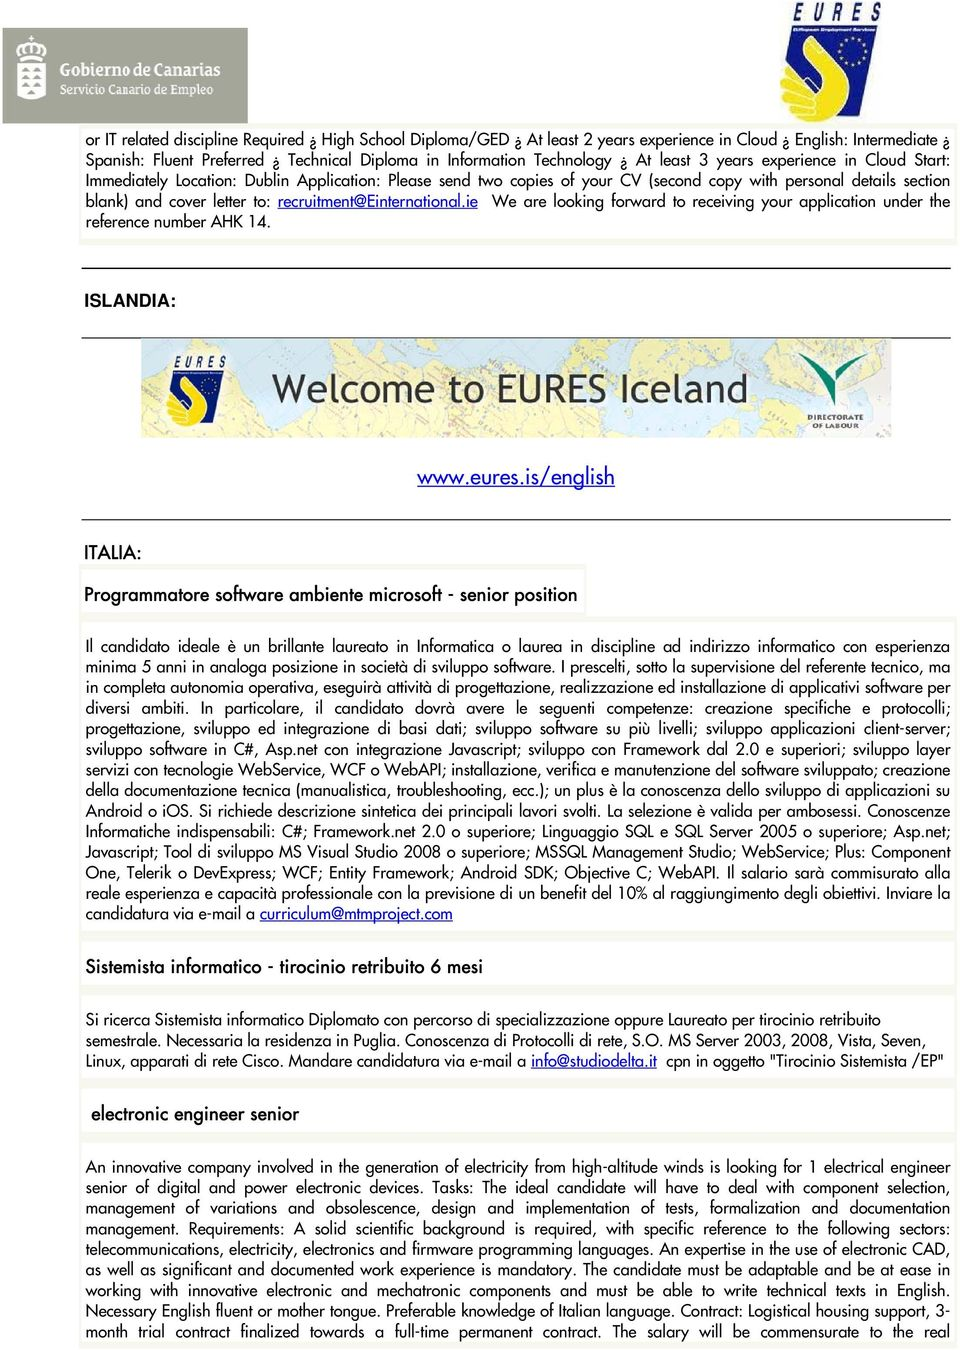 recruitment@einternational.ie We are looking forward to receiving your application under the reference number AHK 14. ISLANDIA: www.eures.